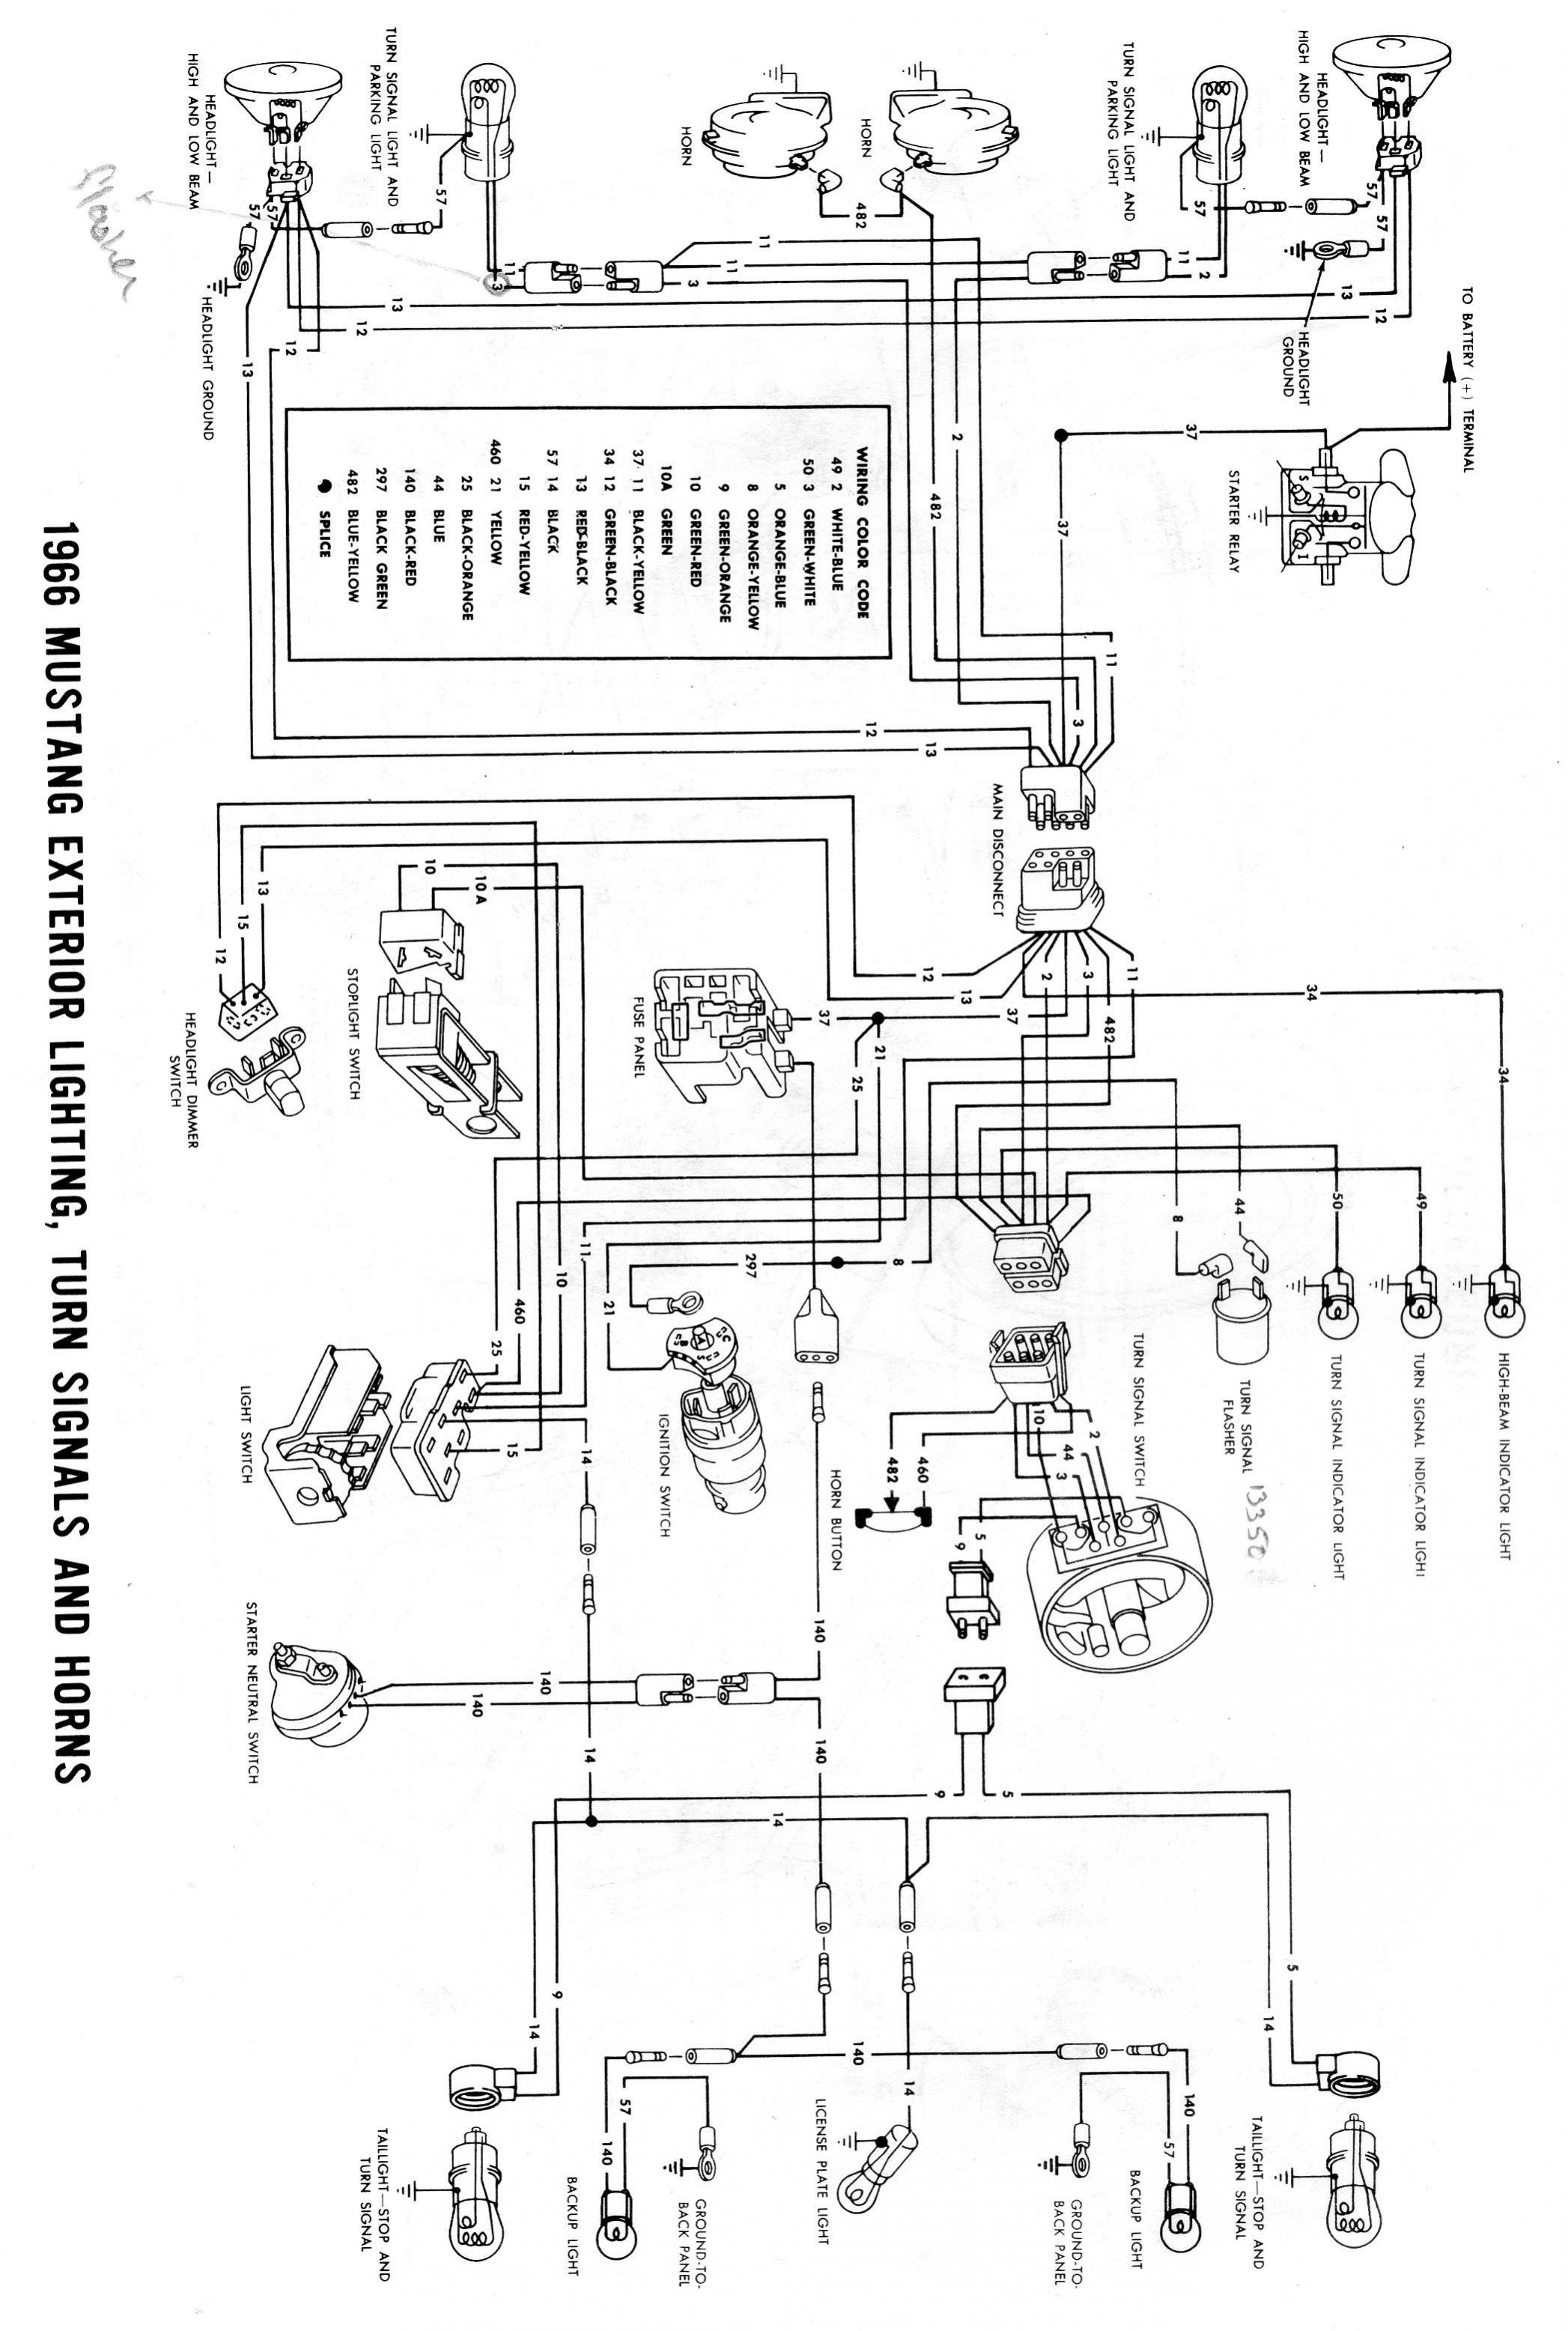 68 mustang ac wiring custom wiring diagram u2022 rh littlewaves co